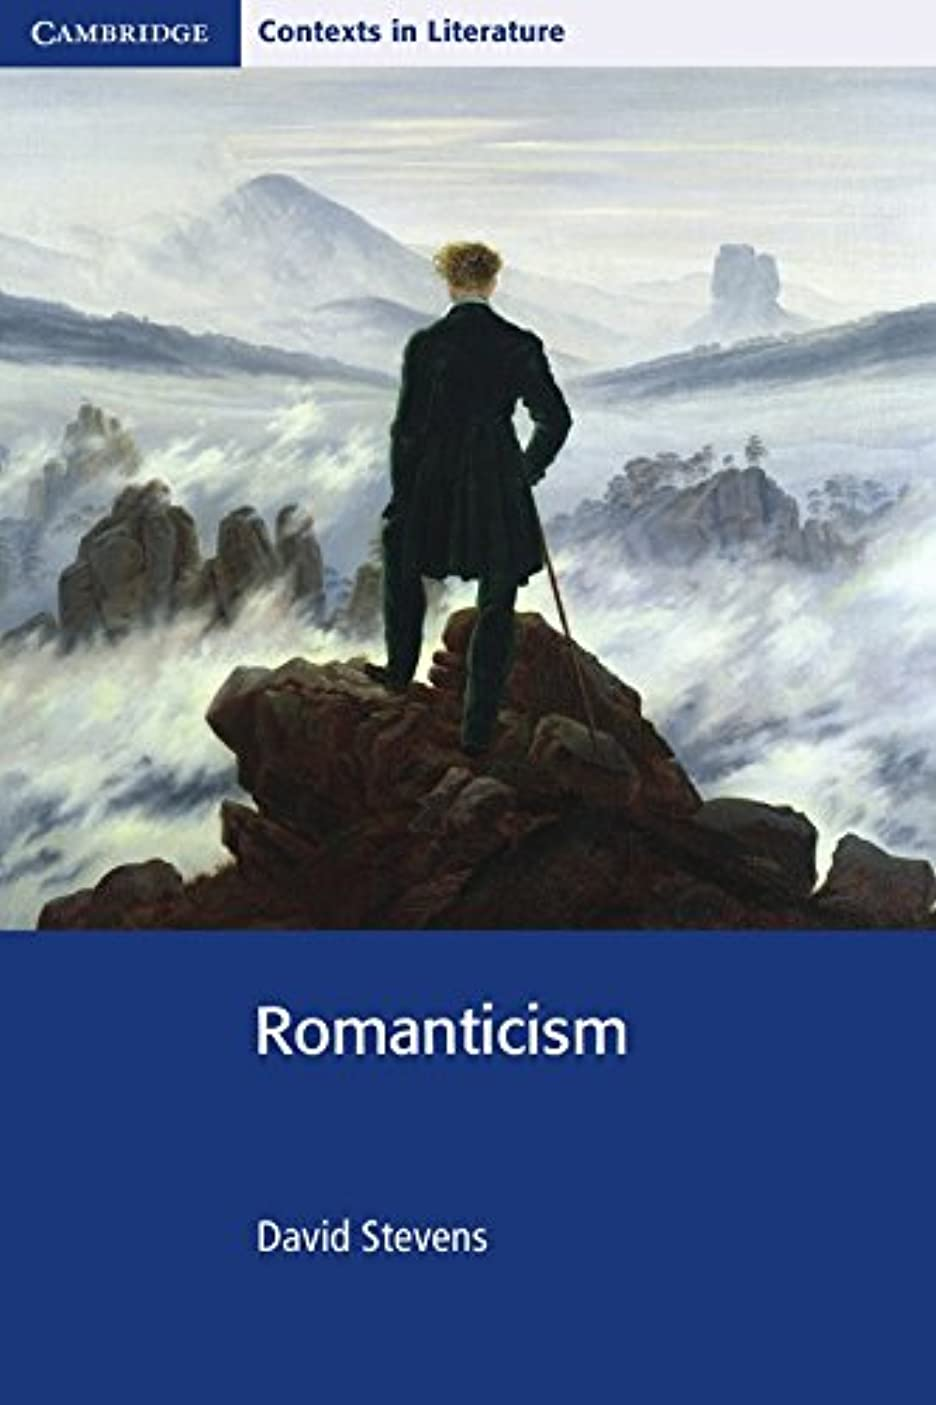 Romanticism (Cambridge Contexts in Literature)